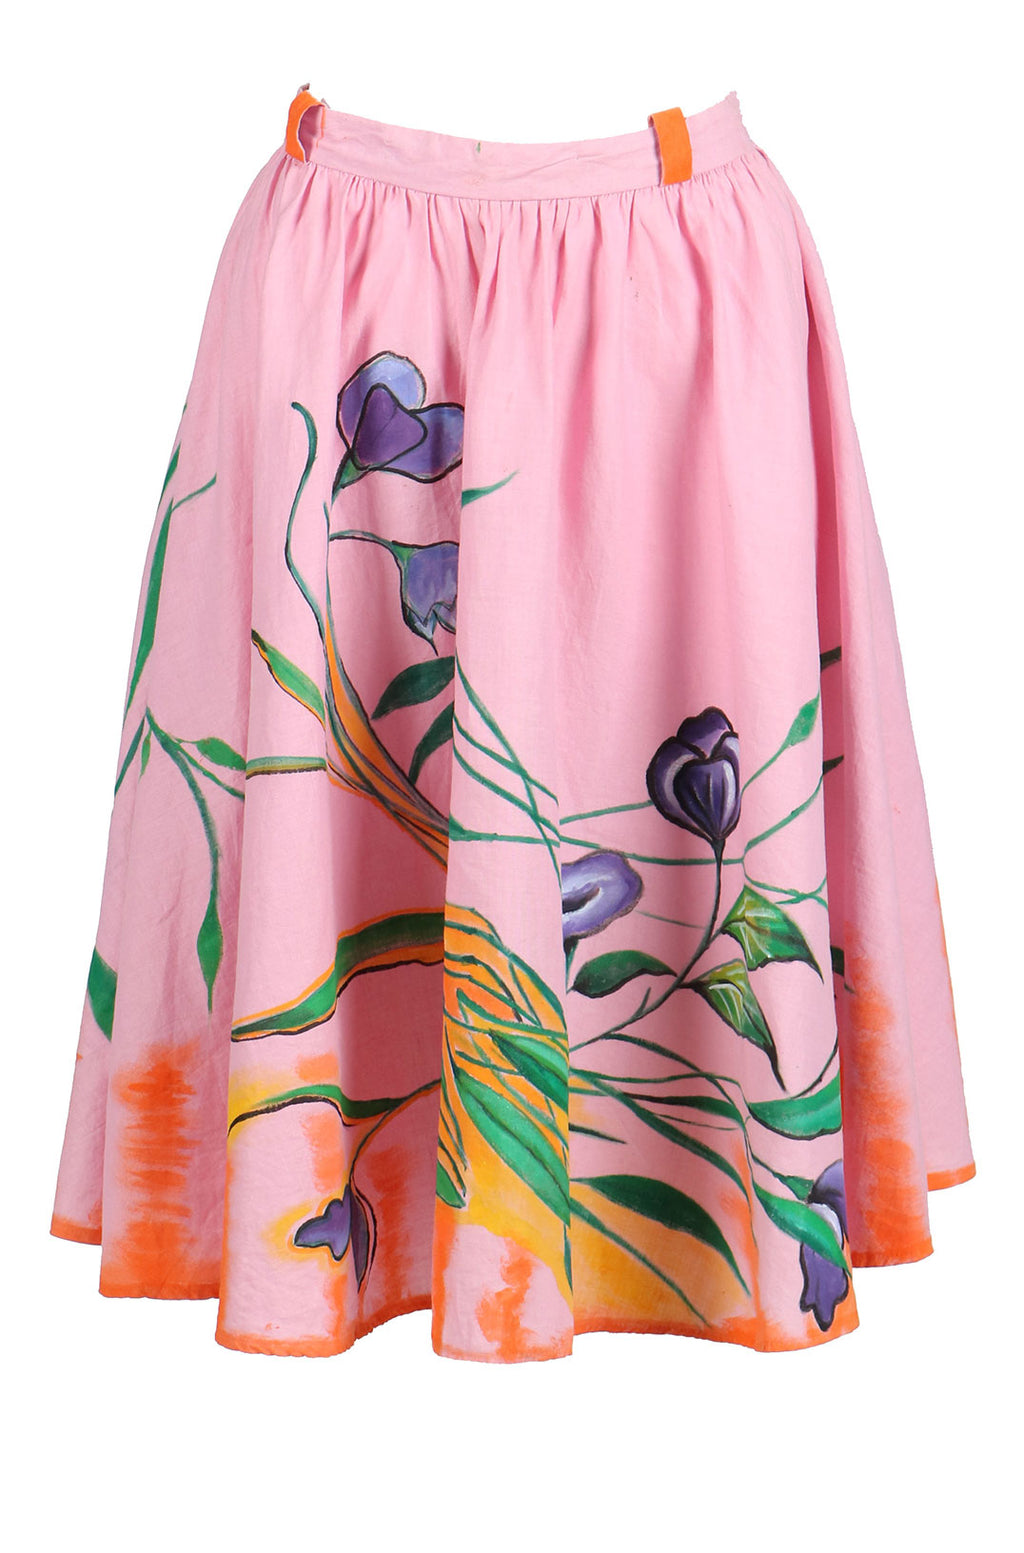 Fanm Mon Hand Painted Linen Pink Color Floral Leaves Summer Skirts HPSS171 SIZE SMALL + BLOUSE + NECKLACE